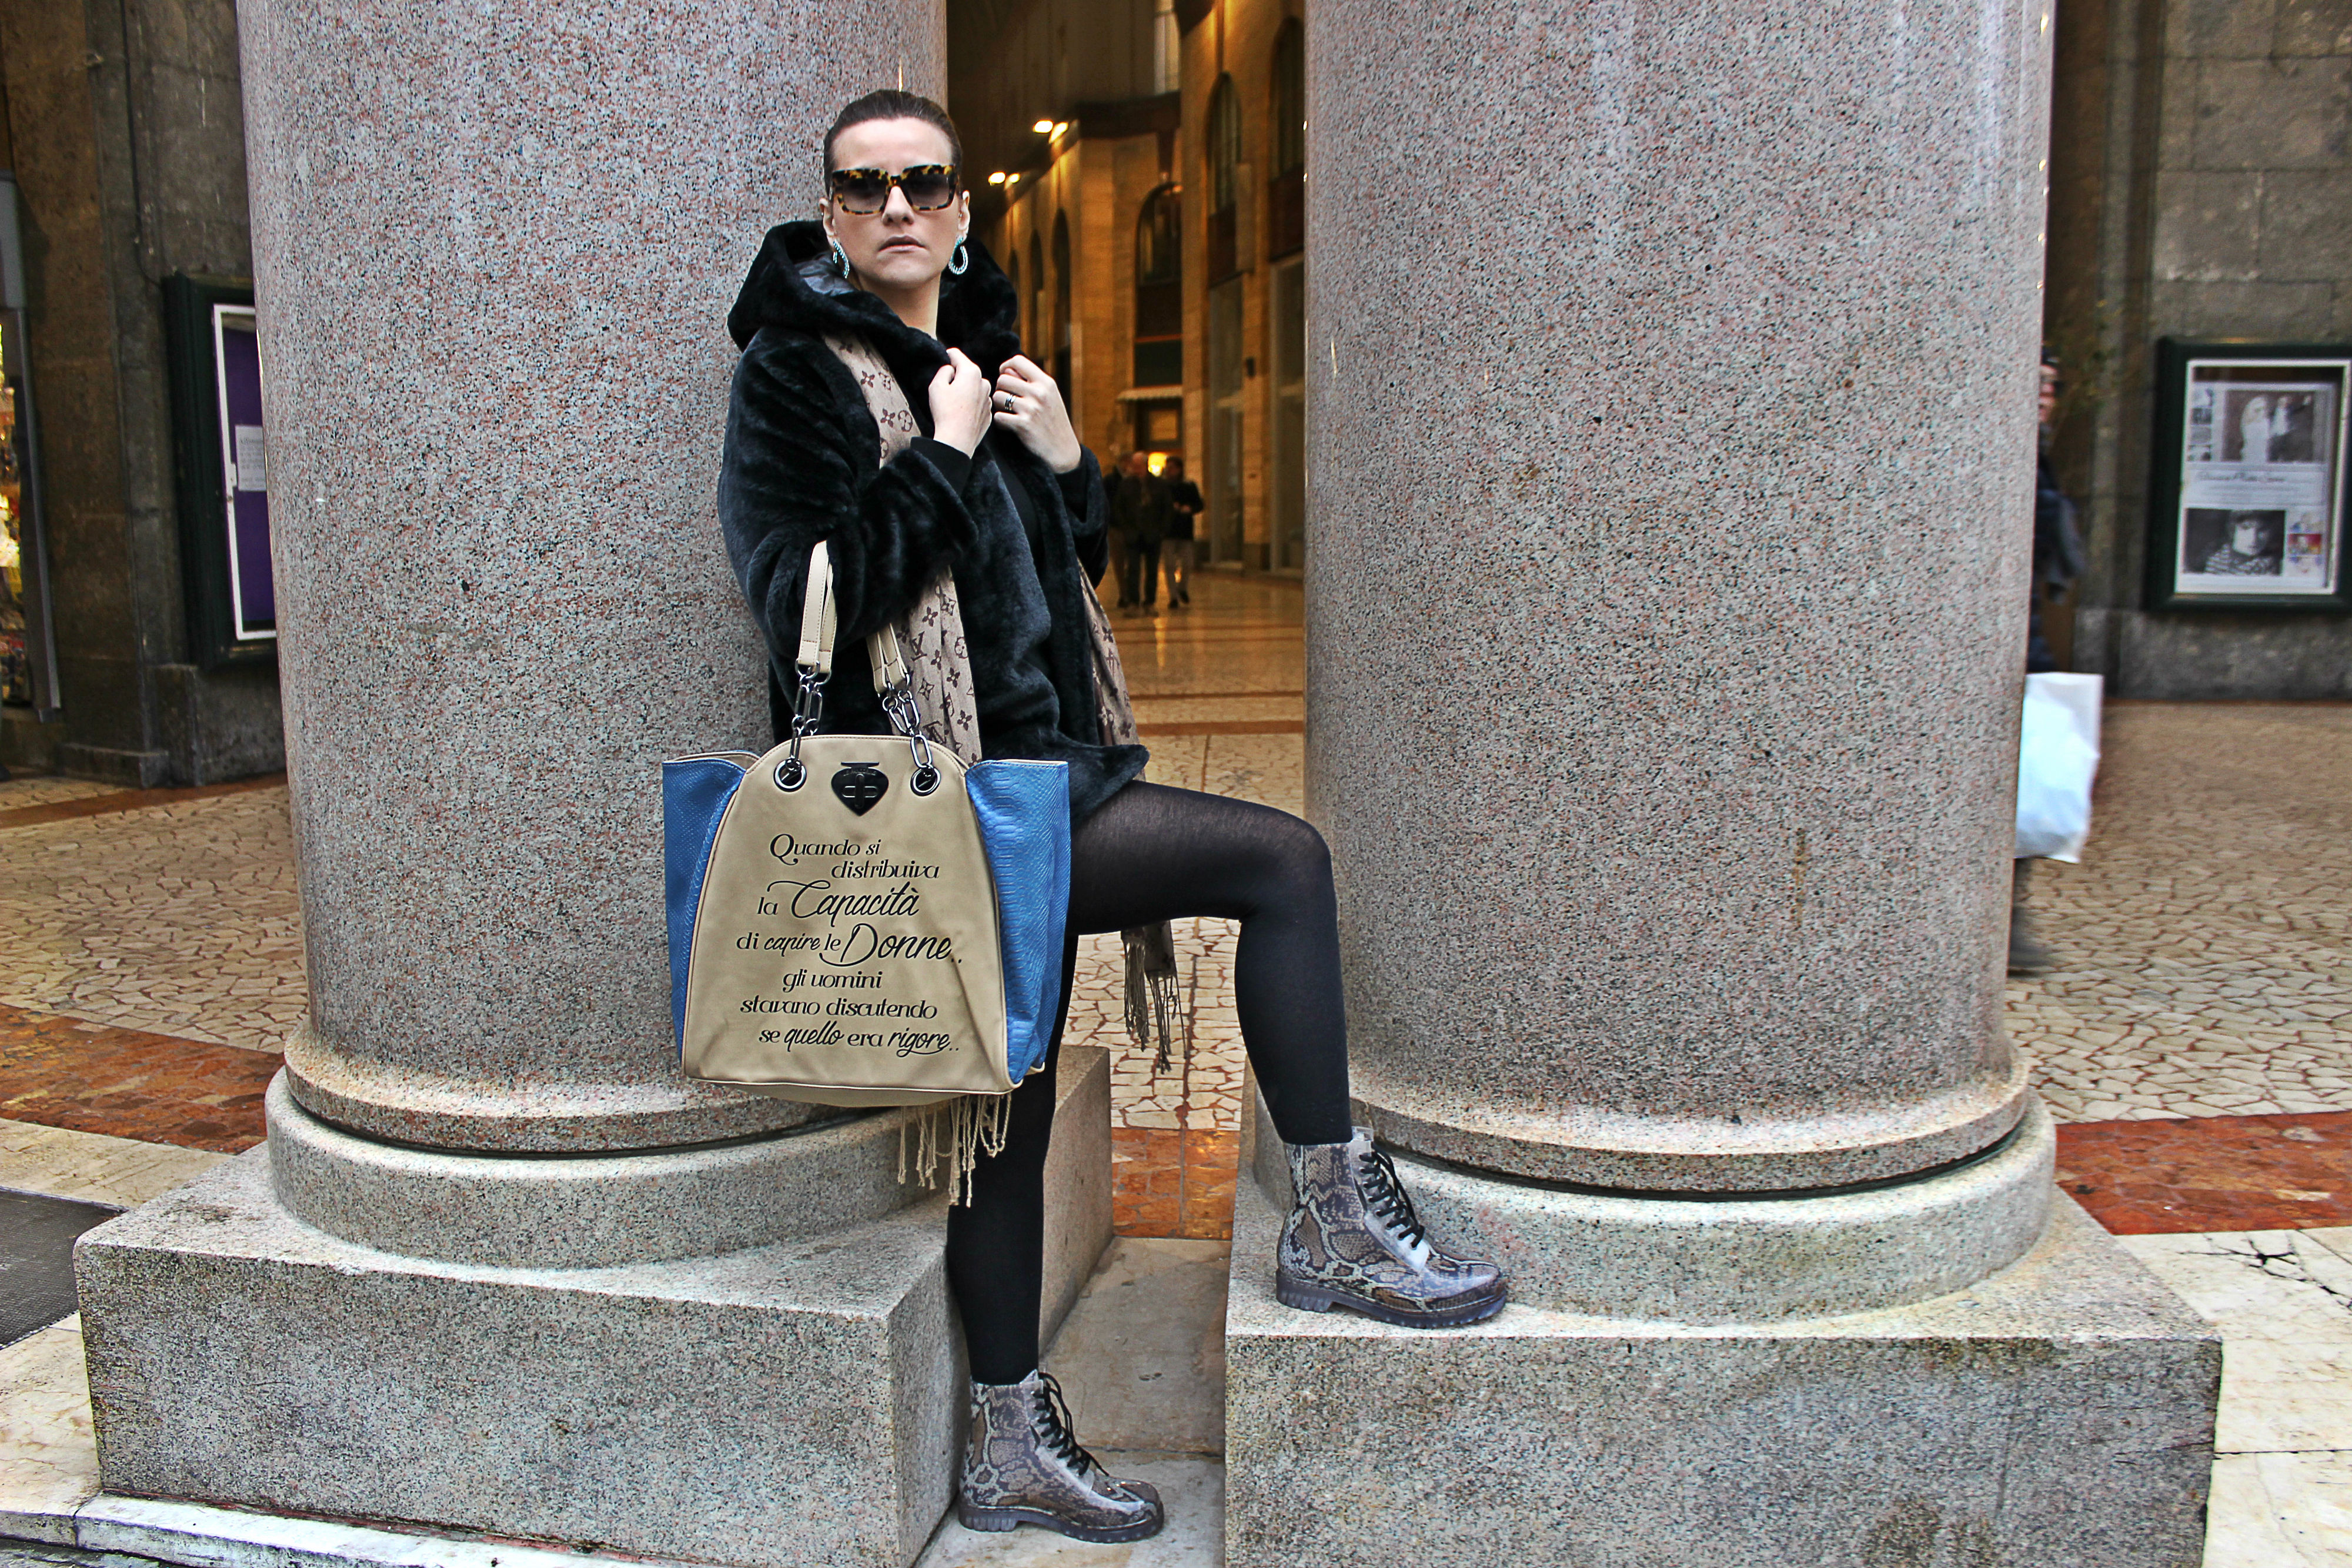 LEPANDORINE-bag-cheap-furcoat-prada-sunglasses7